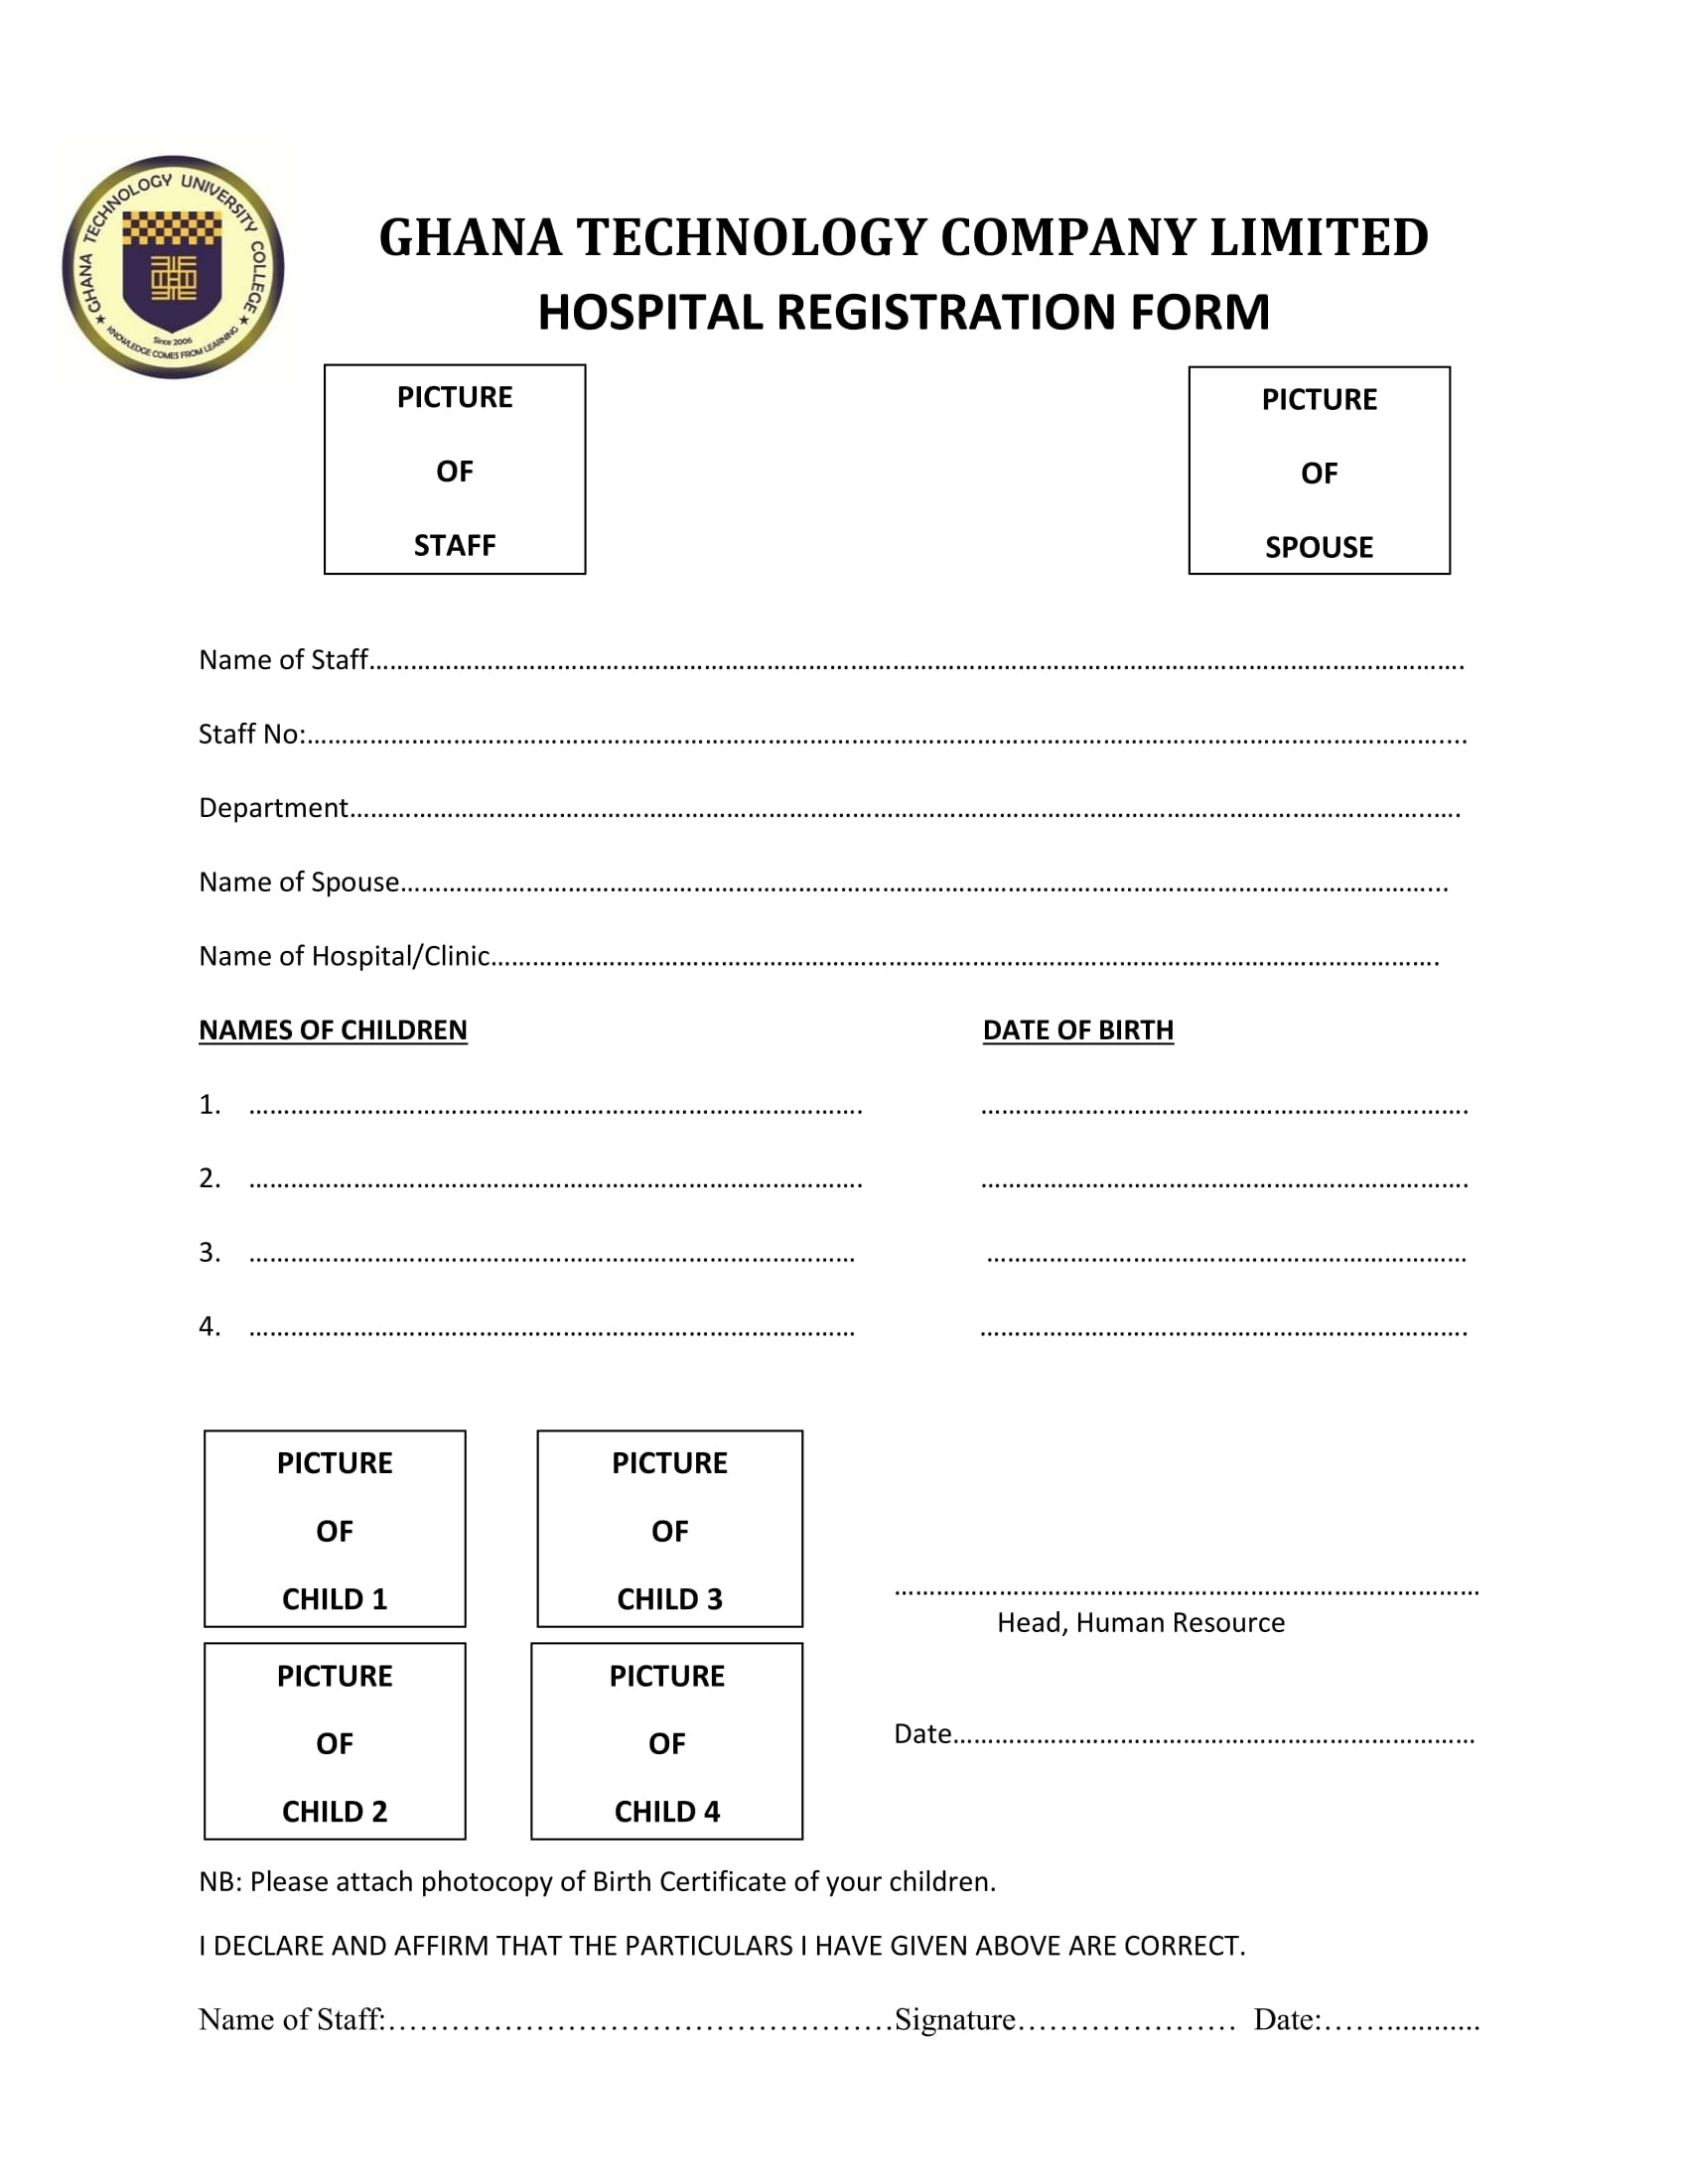 company hospital registration form 1